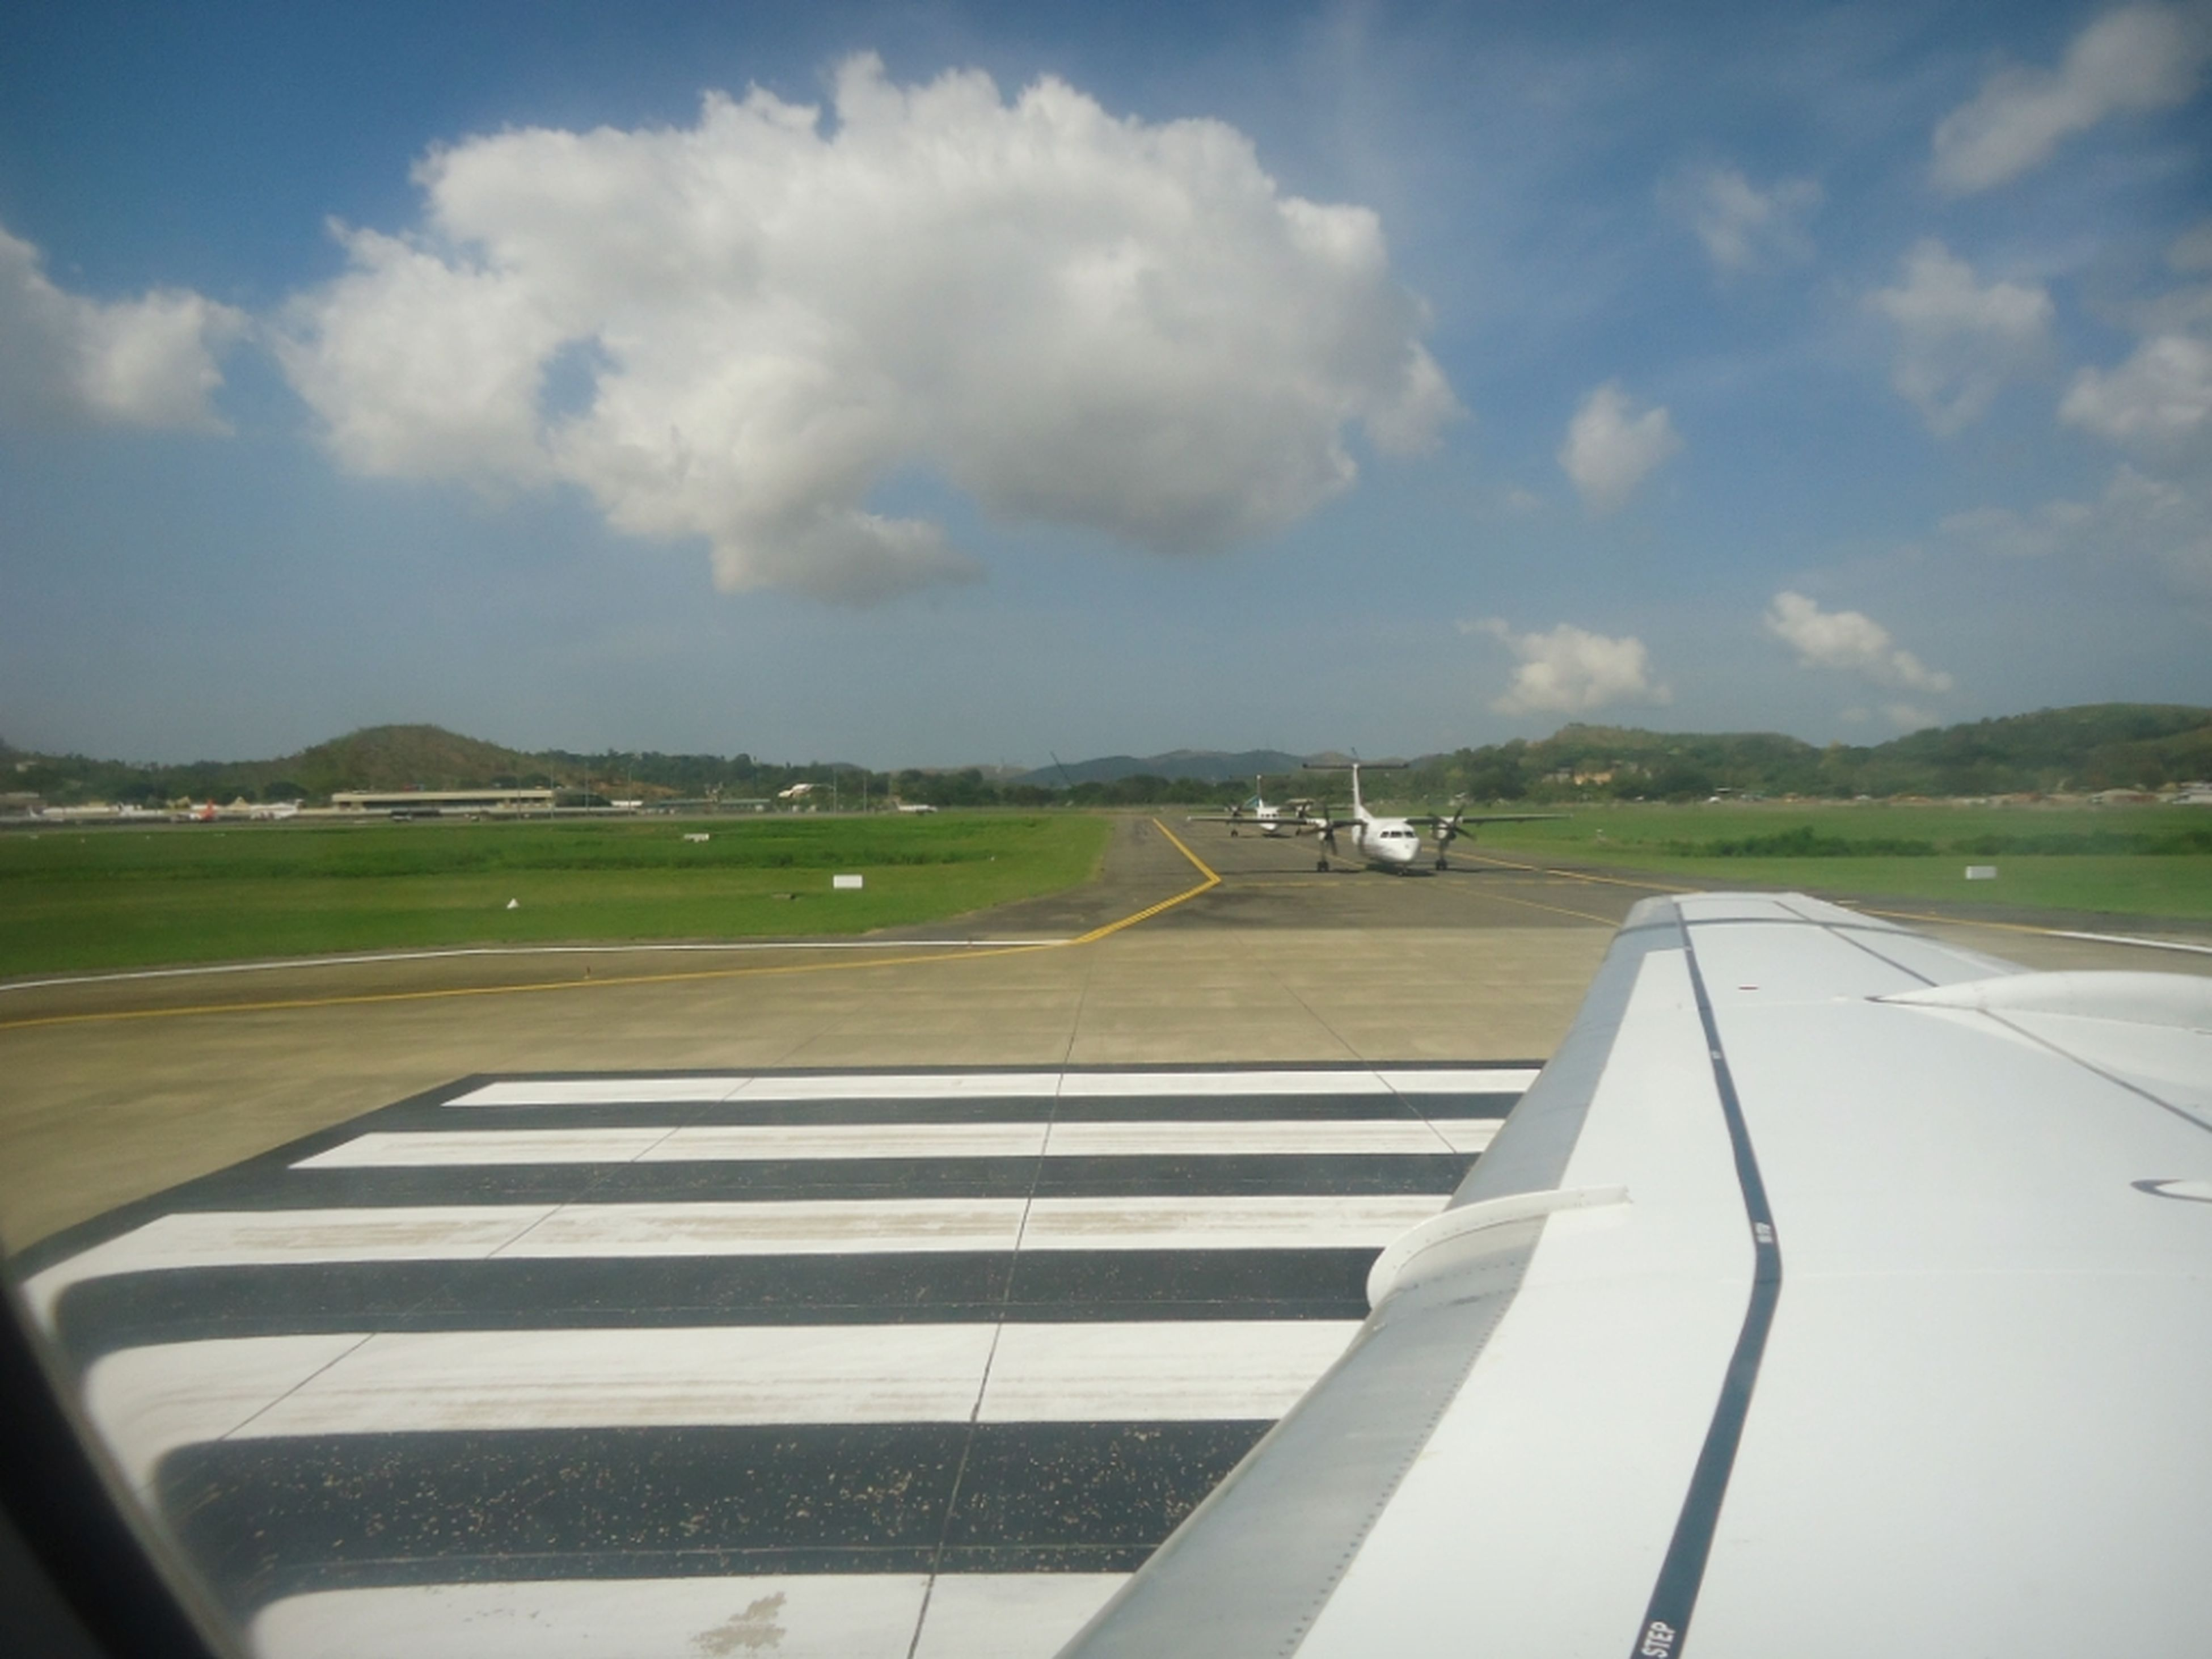 transportation, mode of transport, sky, airplane, air vehicle, cloud - sky, road marking, road, cloud, on the move, flying, cloudy, part of, travel, car, aircraft wing, cropped, airport runway, landscape, glass - material